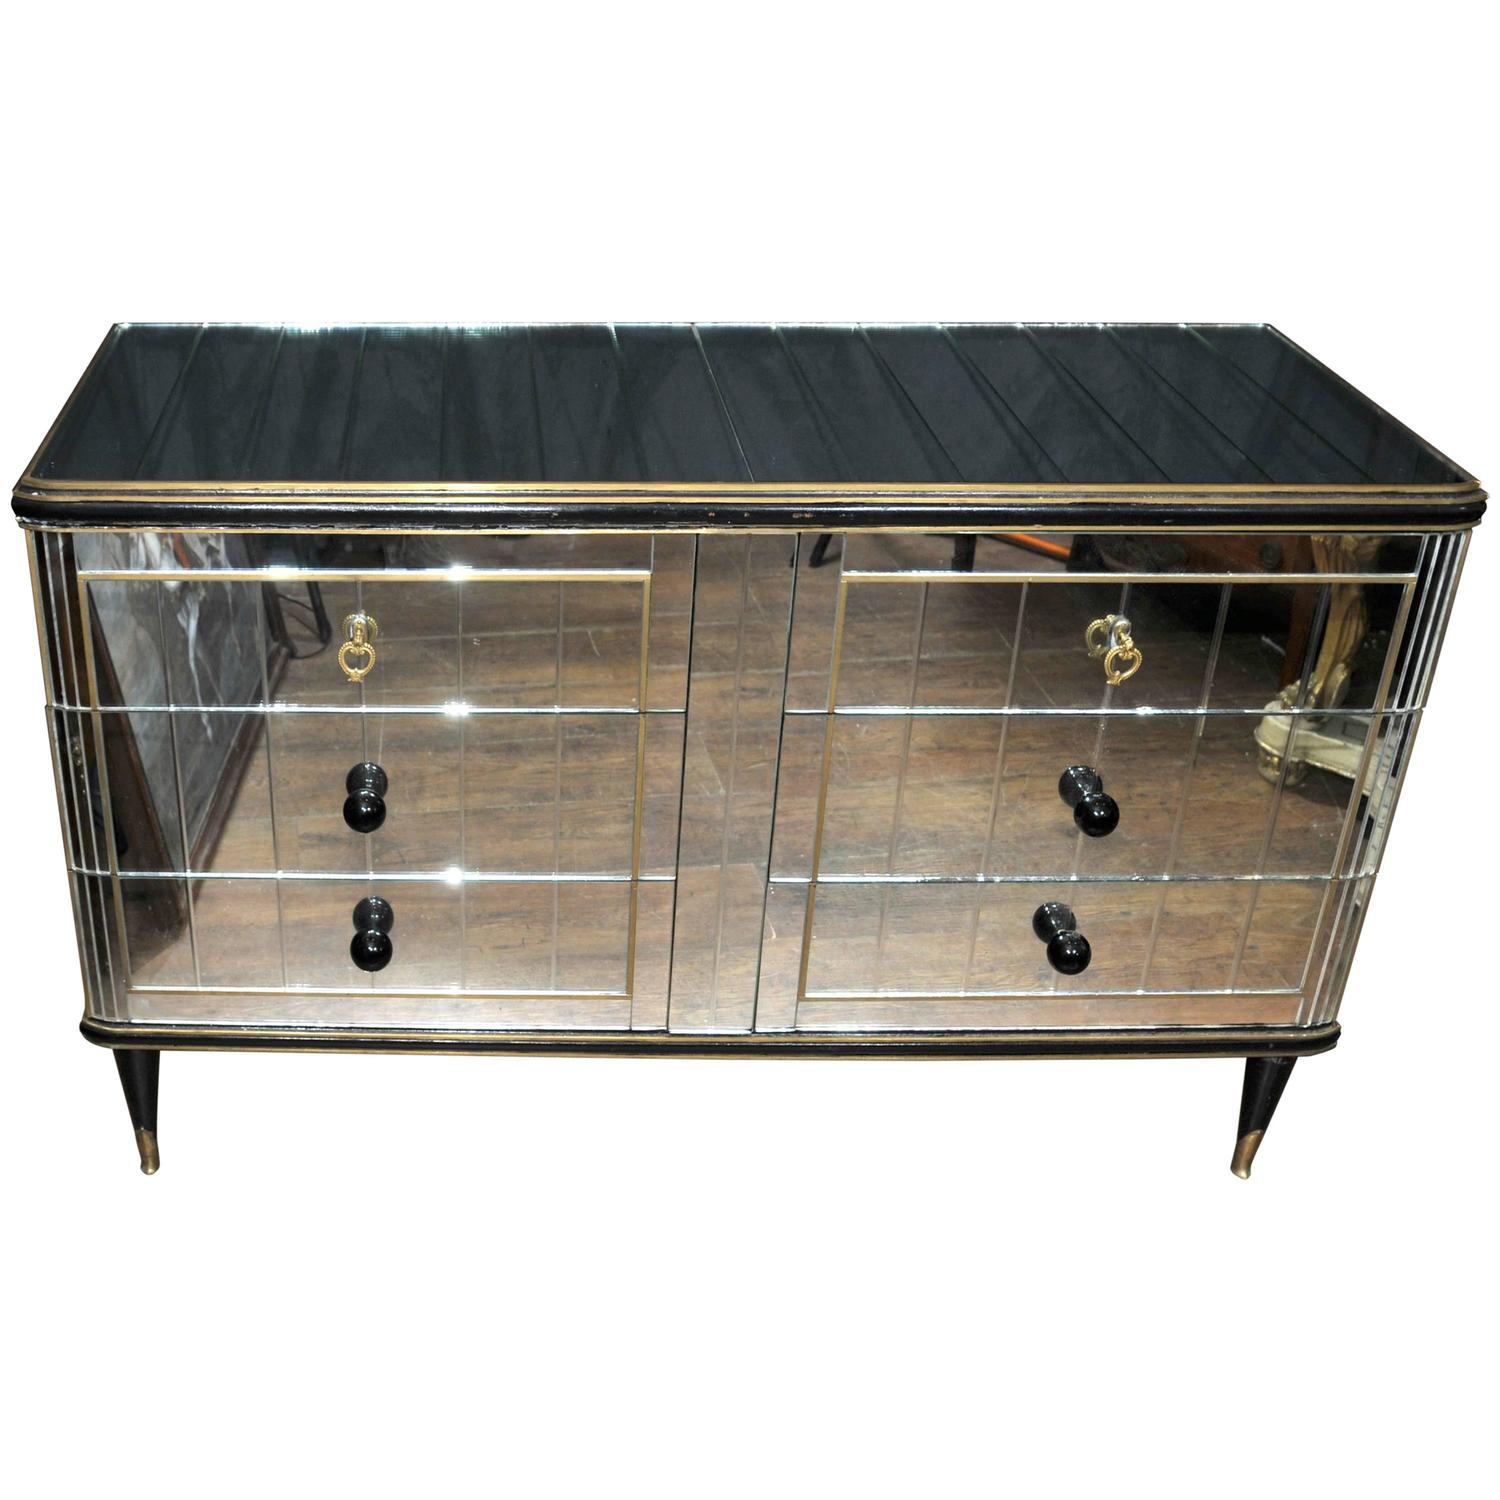 Antique Art Deco Mirrored Cabinet Chest Of Drawers 1920s Furniture For Sale At 1stdibs